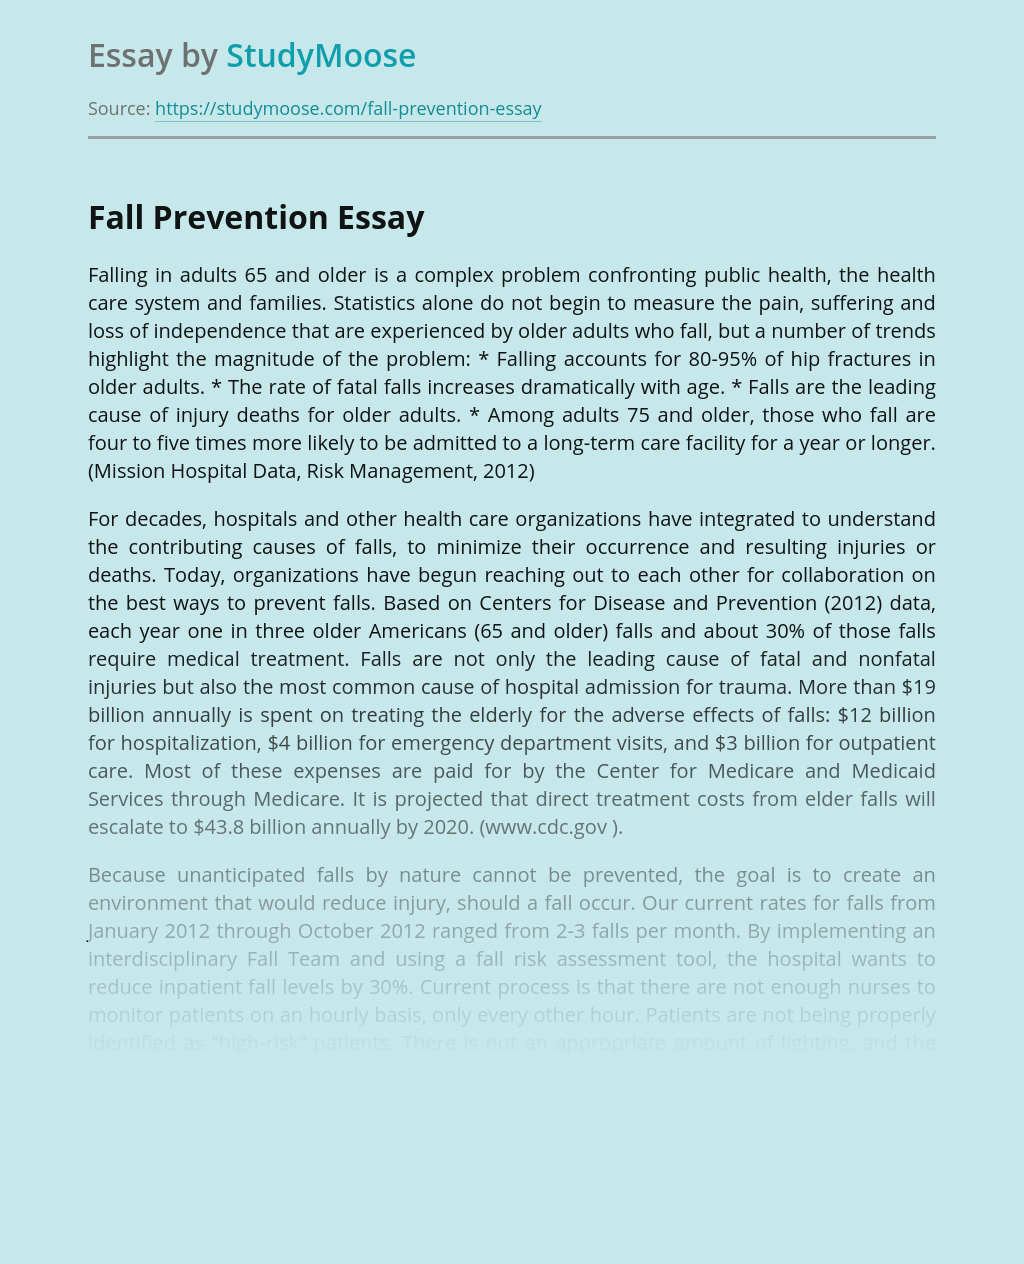 Fall Prevention in adults